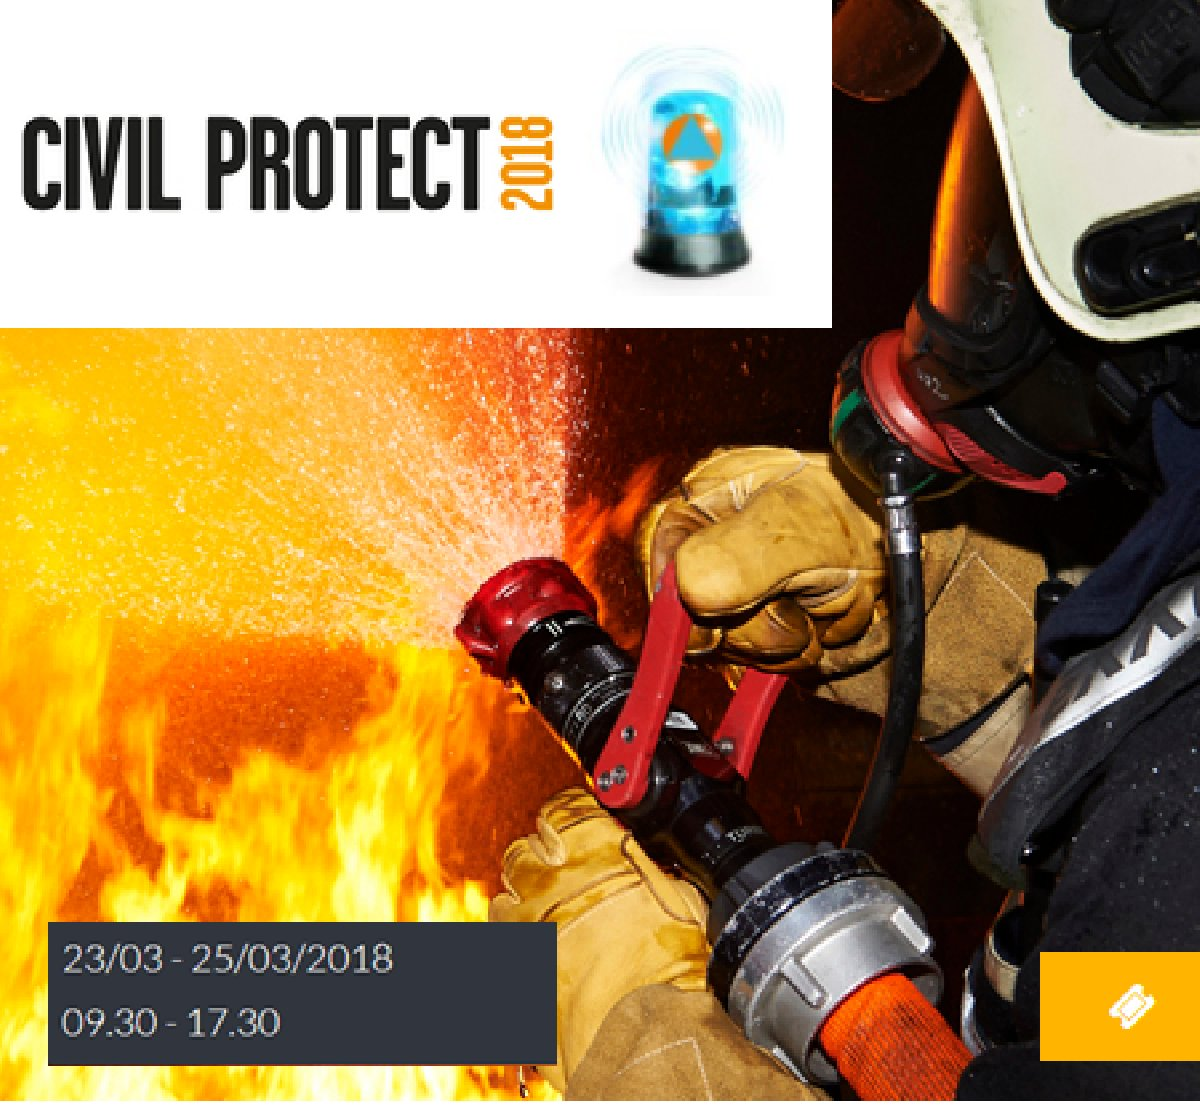 civil protect completa